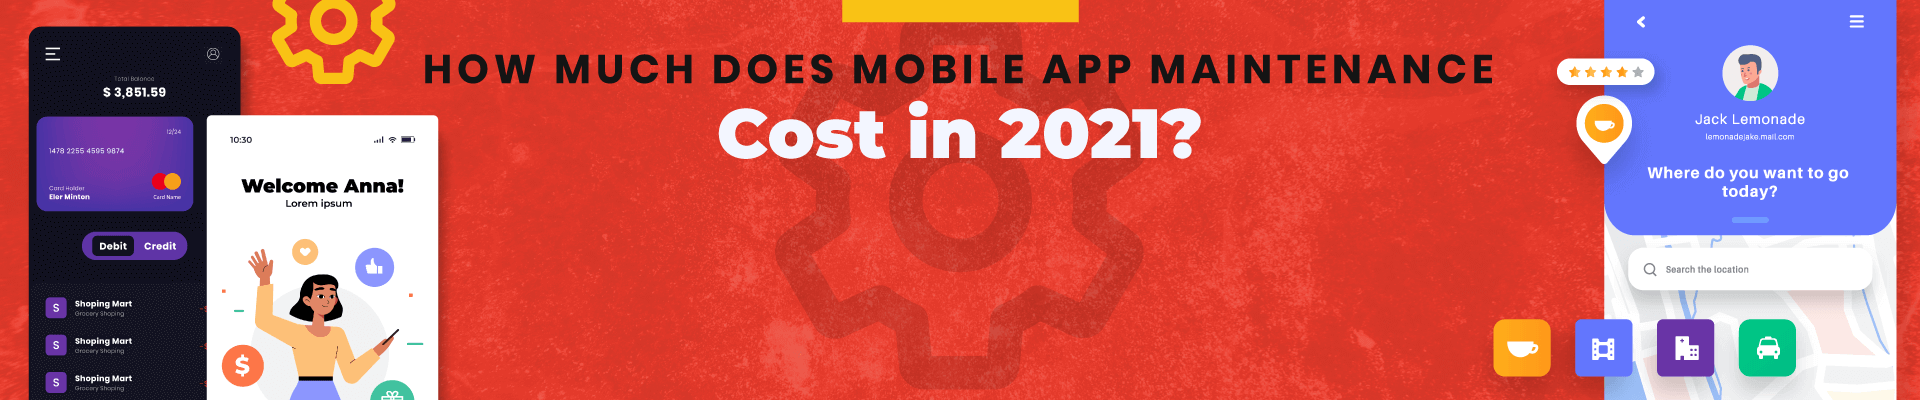 How Much Does it Cost to Maintenance Of Mobile App